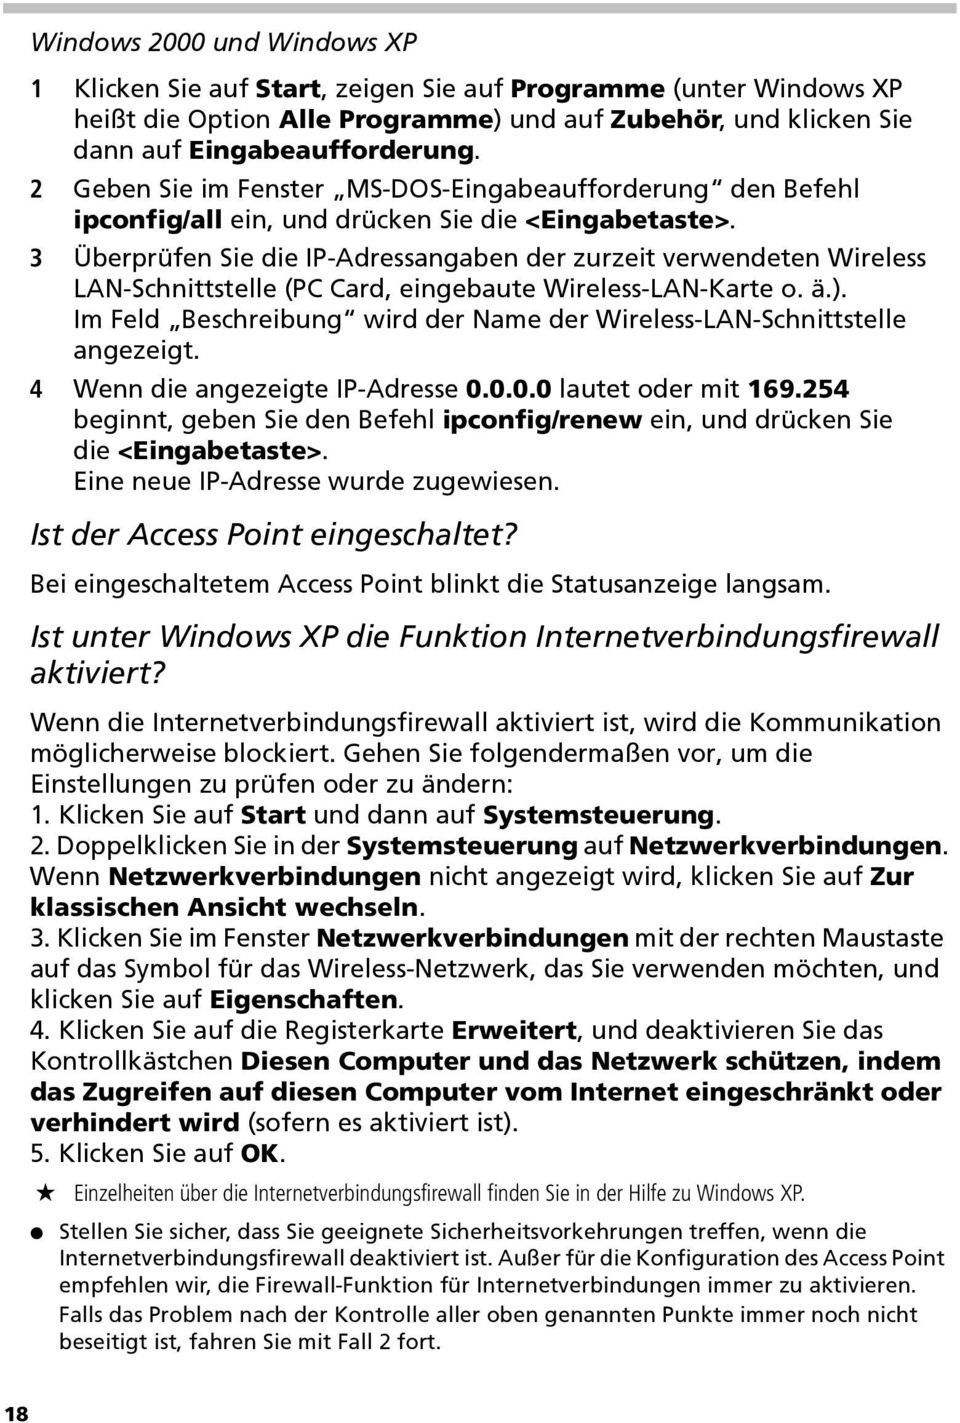 3 Überprüfen Sie die IP-Adressangaben der zurzeit verwendeten Wireless LAN-Schnittstelle (PC Card, eingebaute Wireless-LAN-Karte o. ä.).